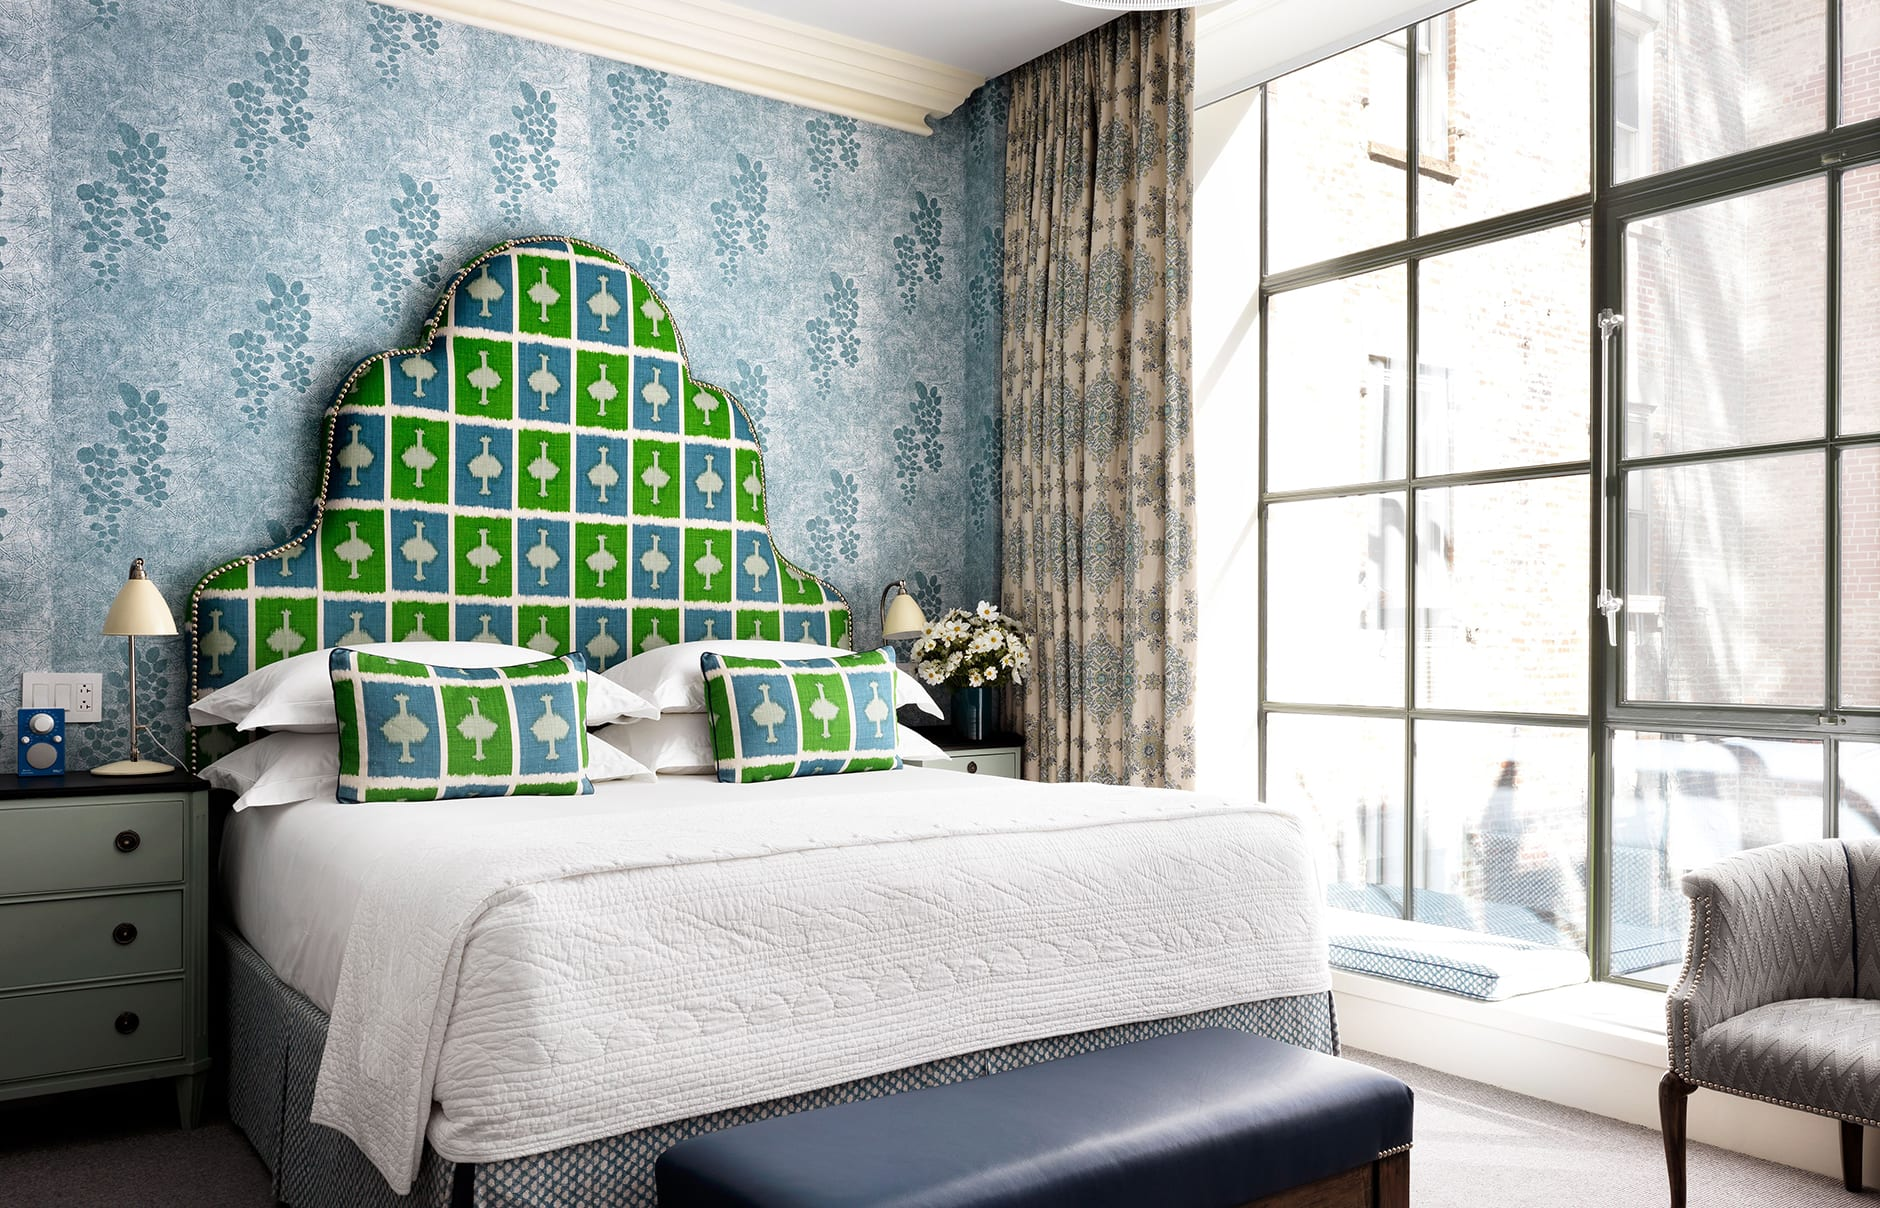 Crosby Street Hotel, New York, USA. Hotel Review by TravelPlusStyle. Photo © Firmdale Hotels